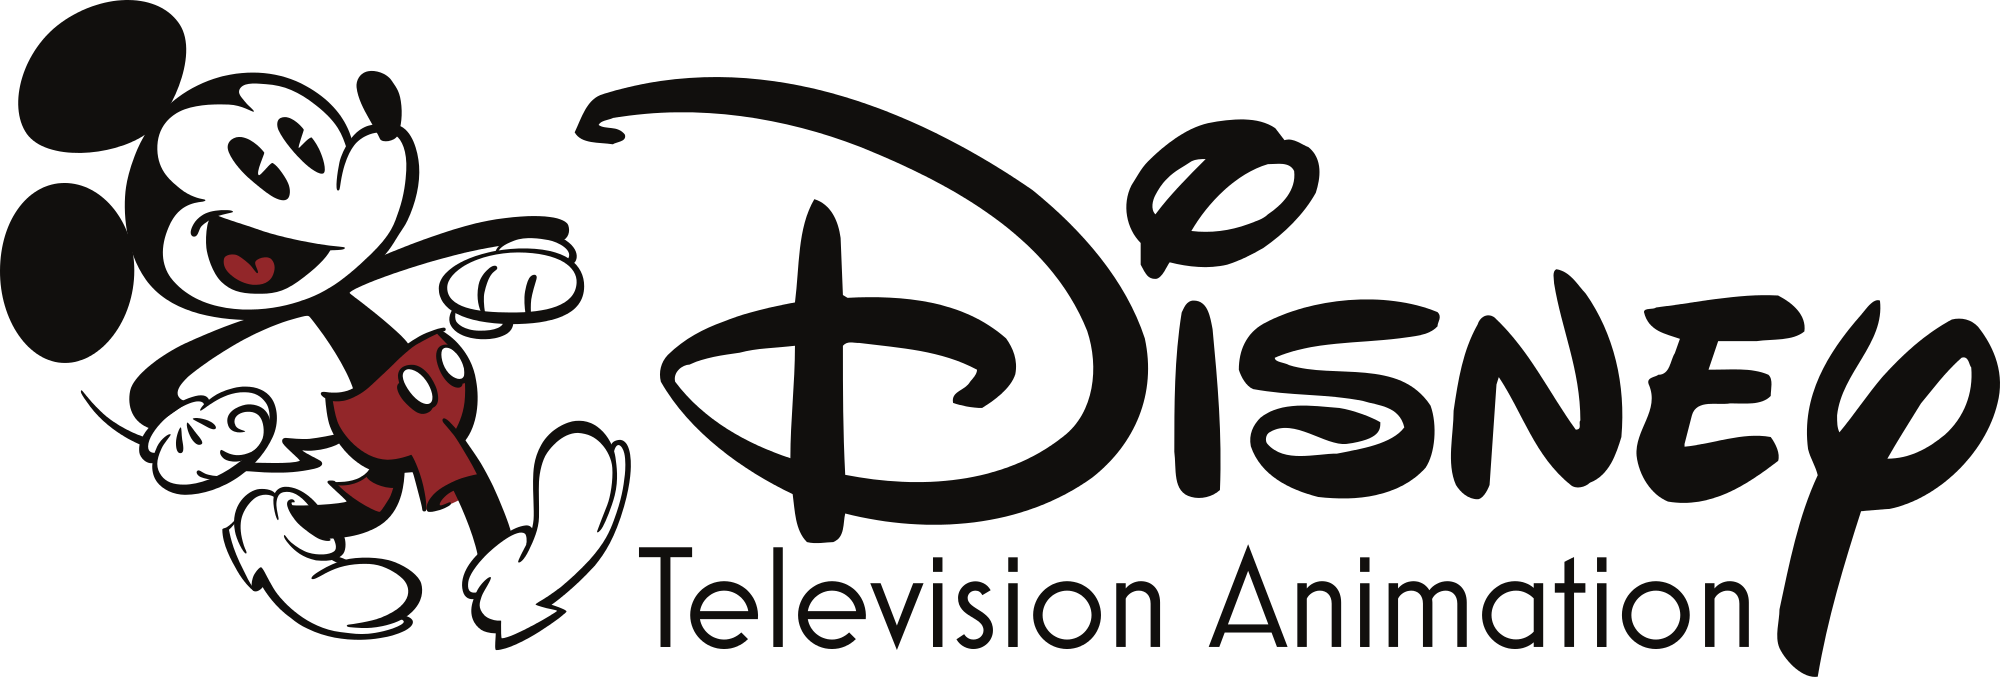 Disney Television Animation Disney Wiki